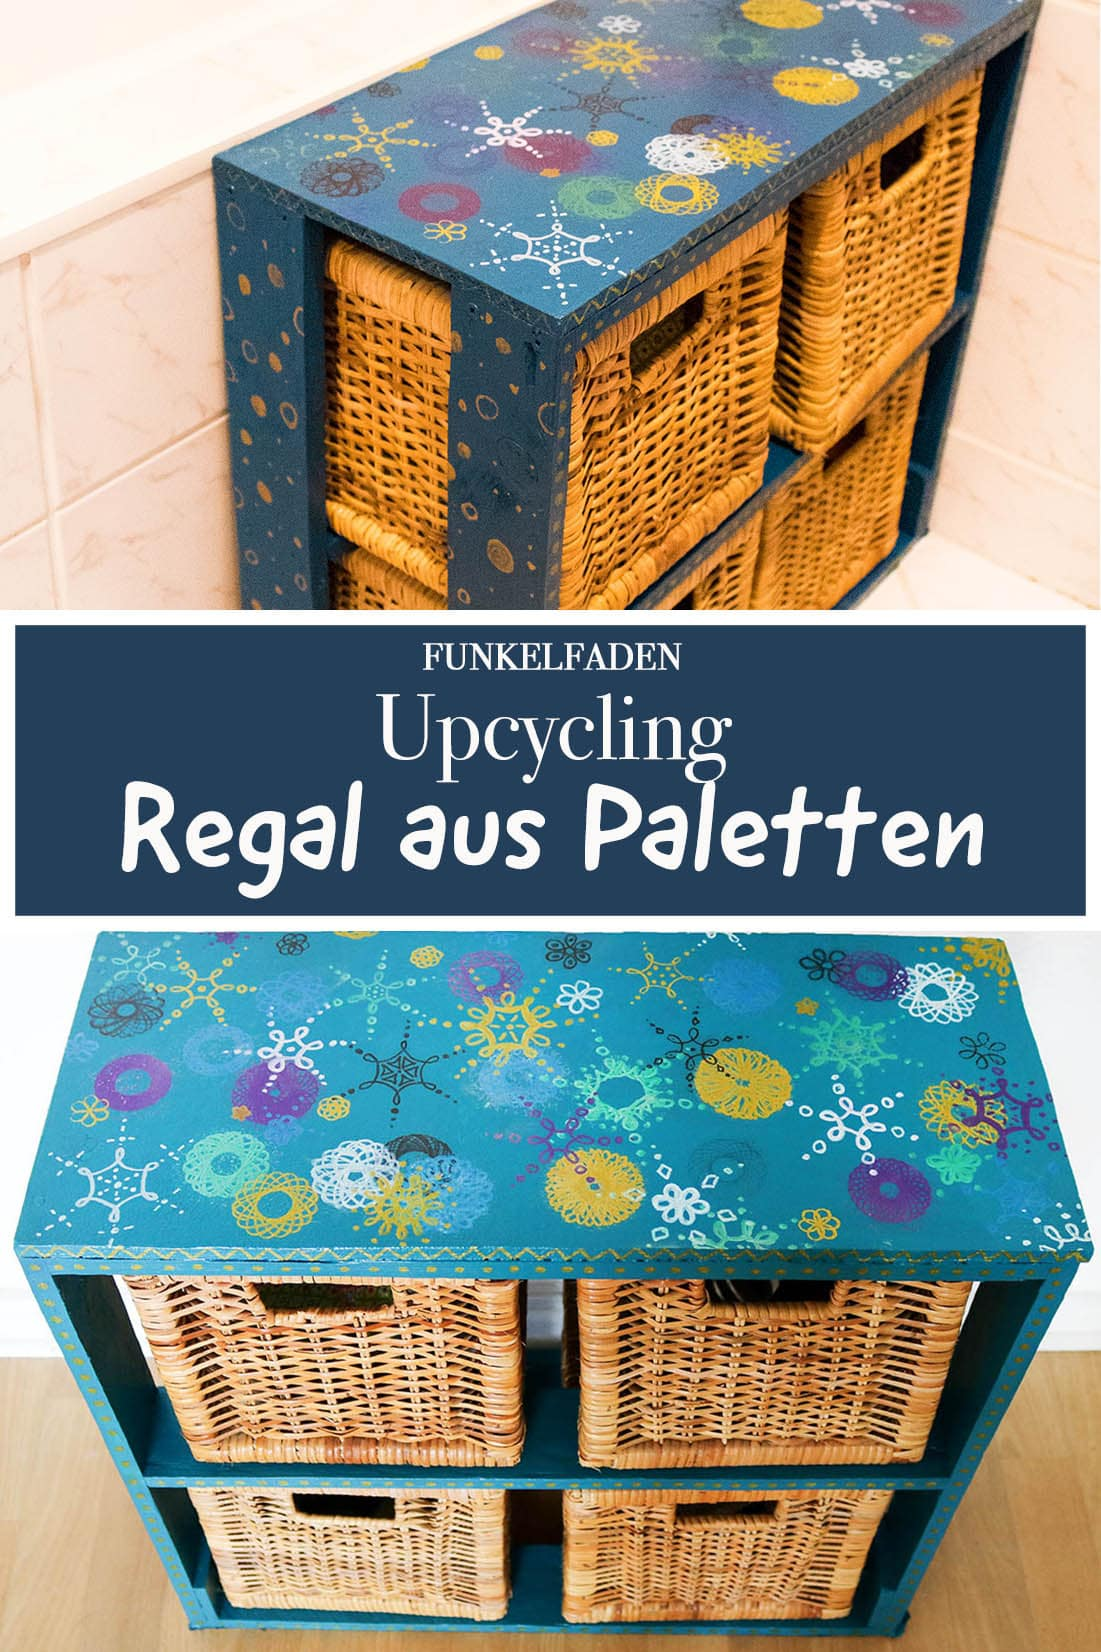 Upcycling Regal aus Paletten